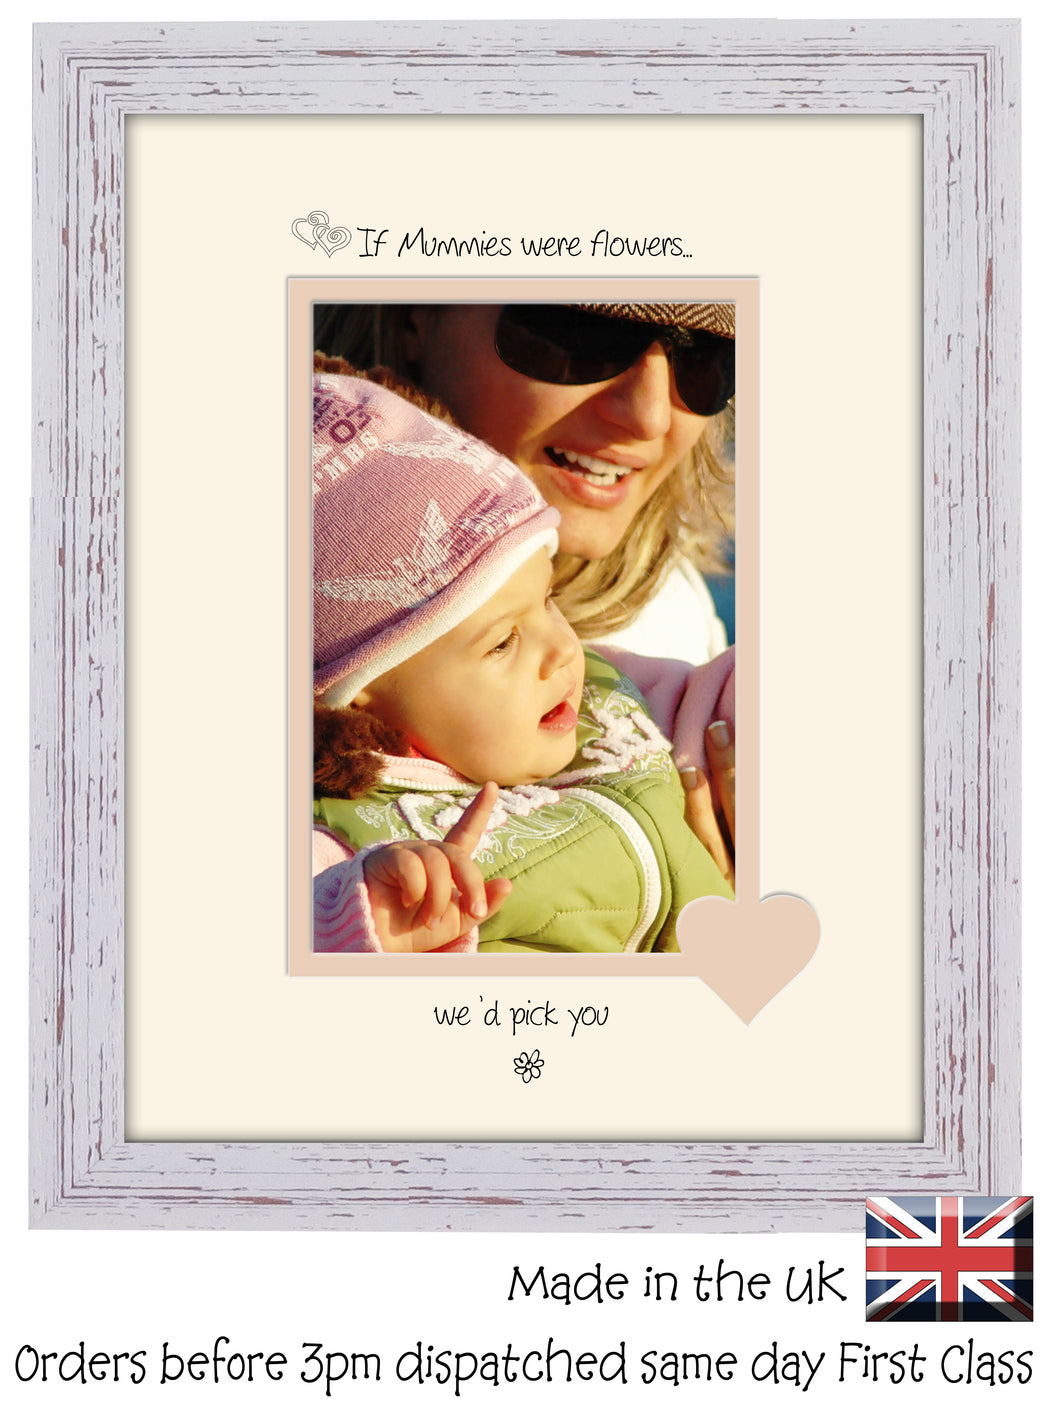 Mummy Photo Frame - If Mummies were flowers… we'd pick you Portrait photo frame 6